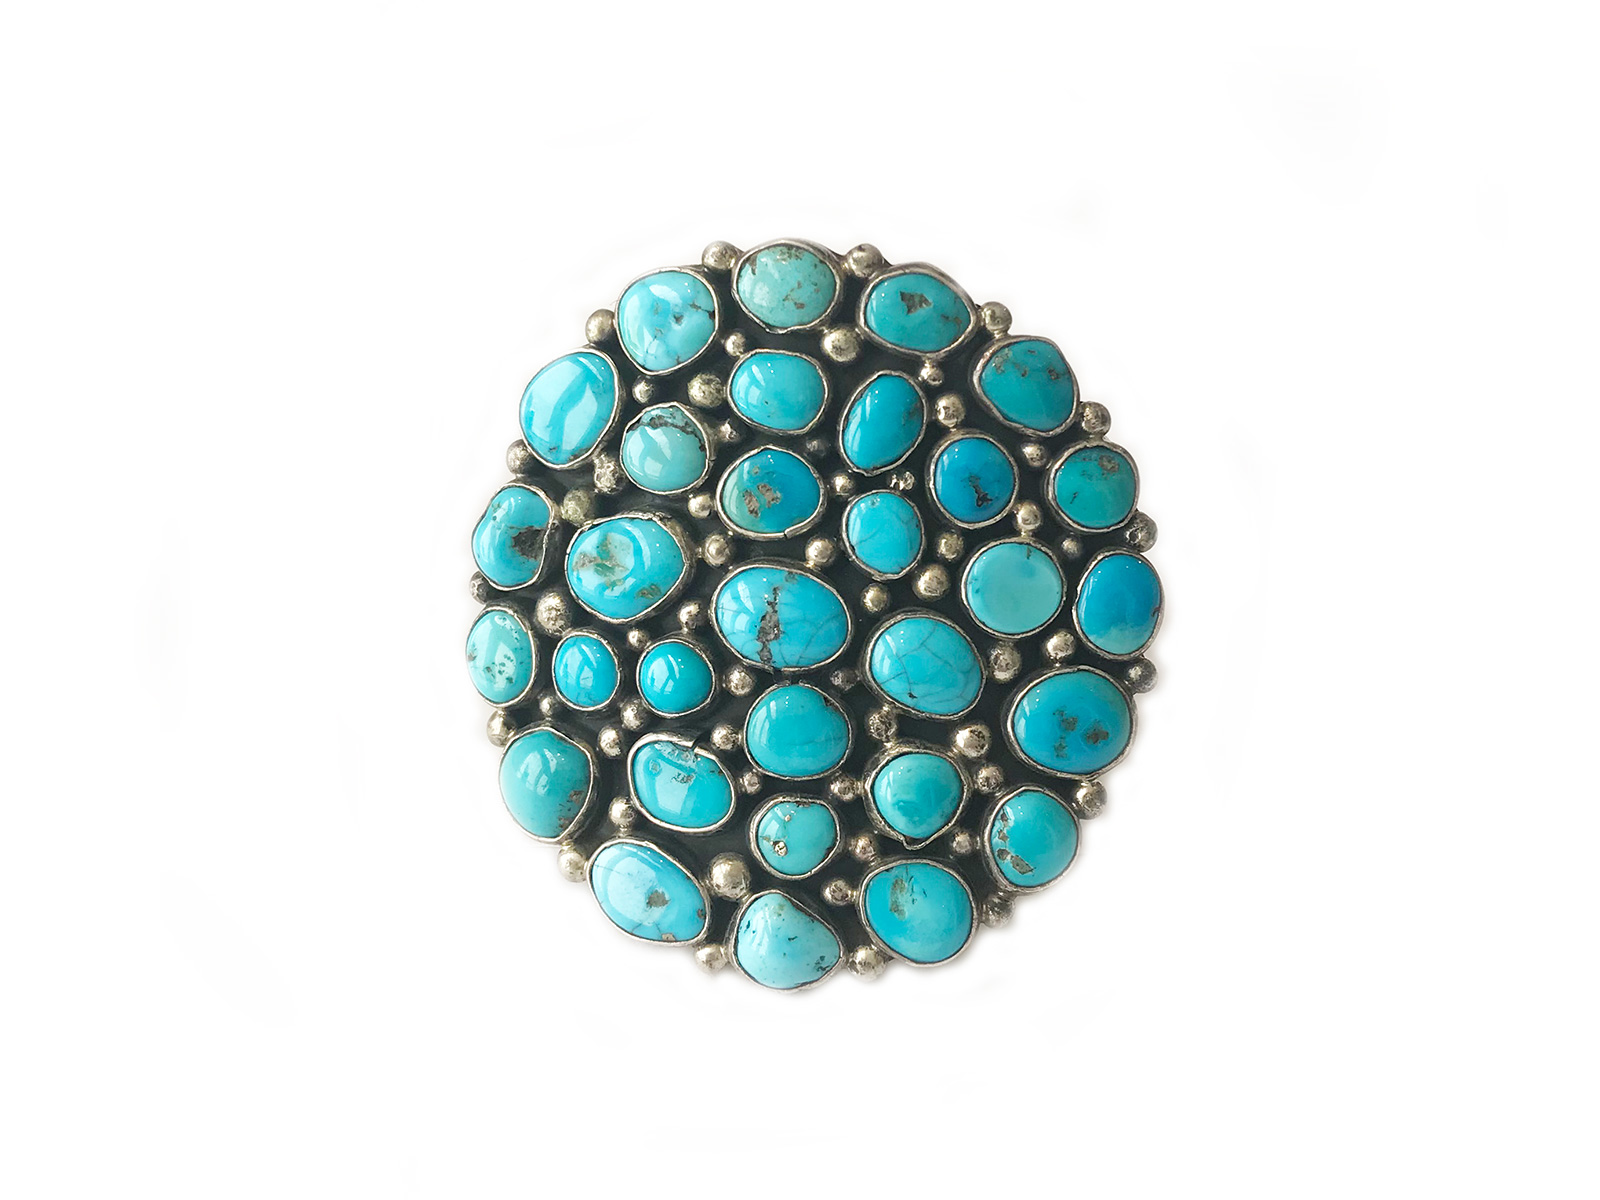 Sleeping Beauty Turquoise Round Cluster Cuff